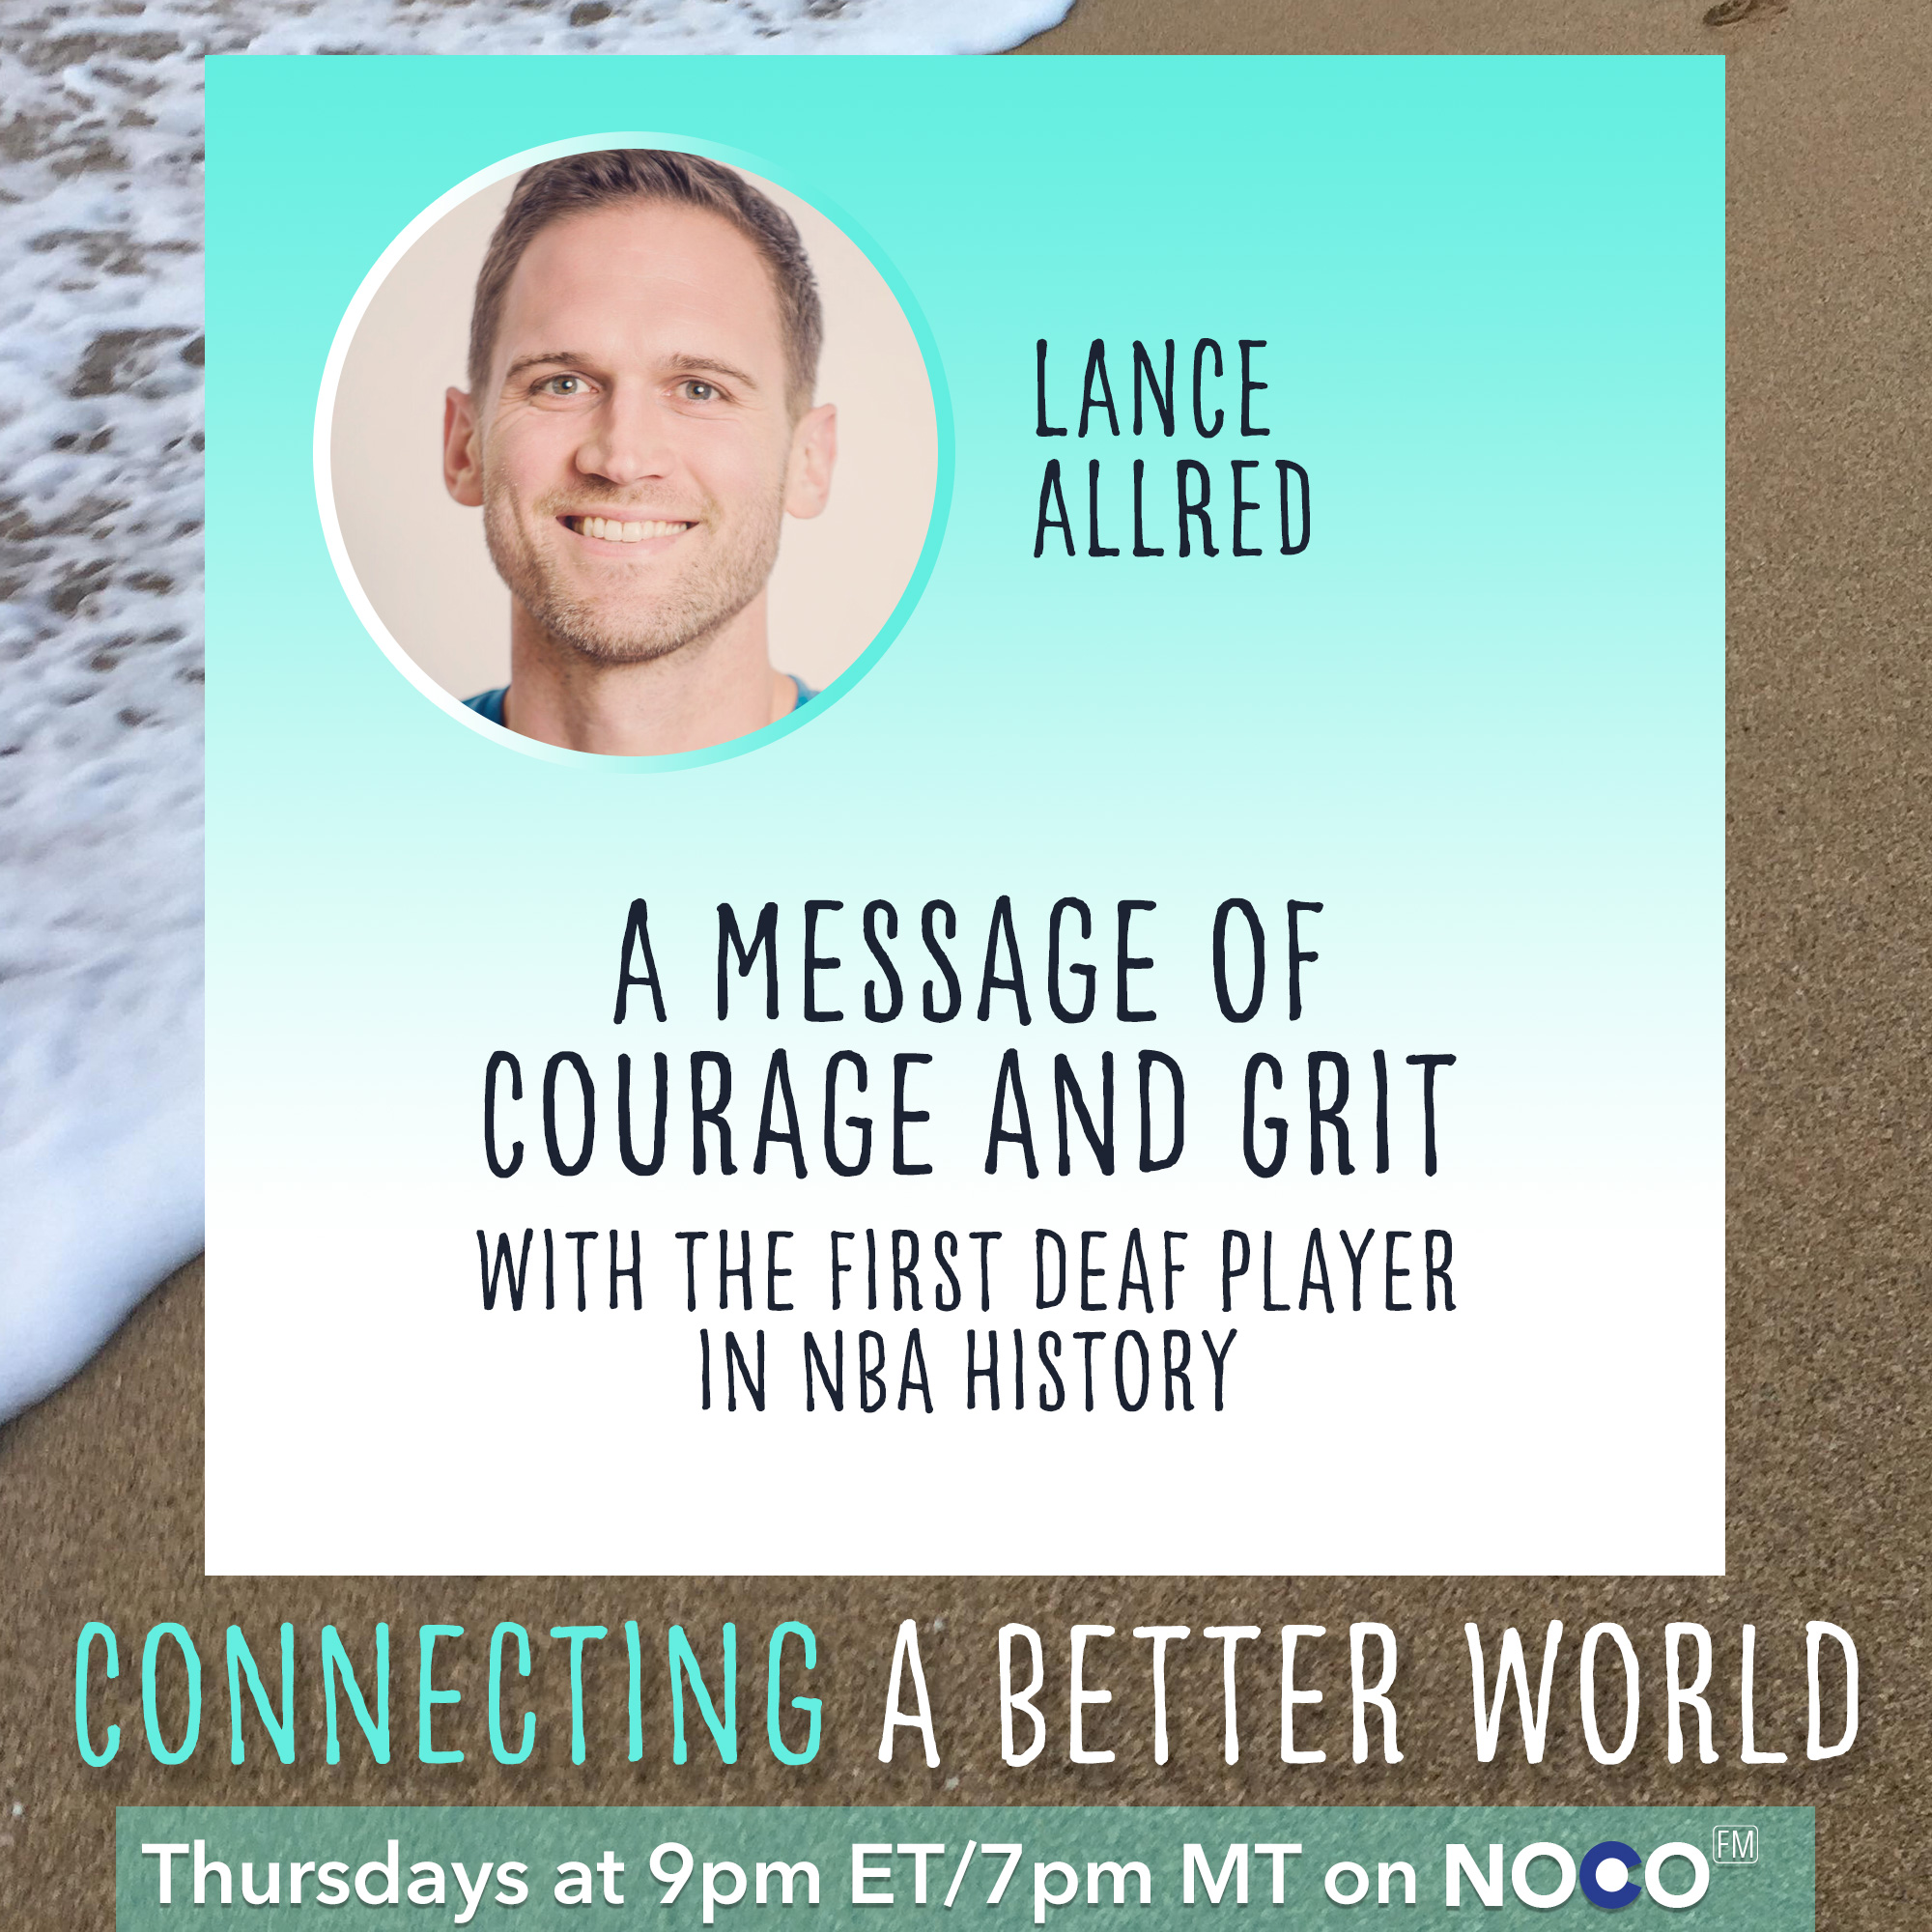 A Message of Courage and Grit with Lance Allred, the First Deaf Basketball Player in NBA History